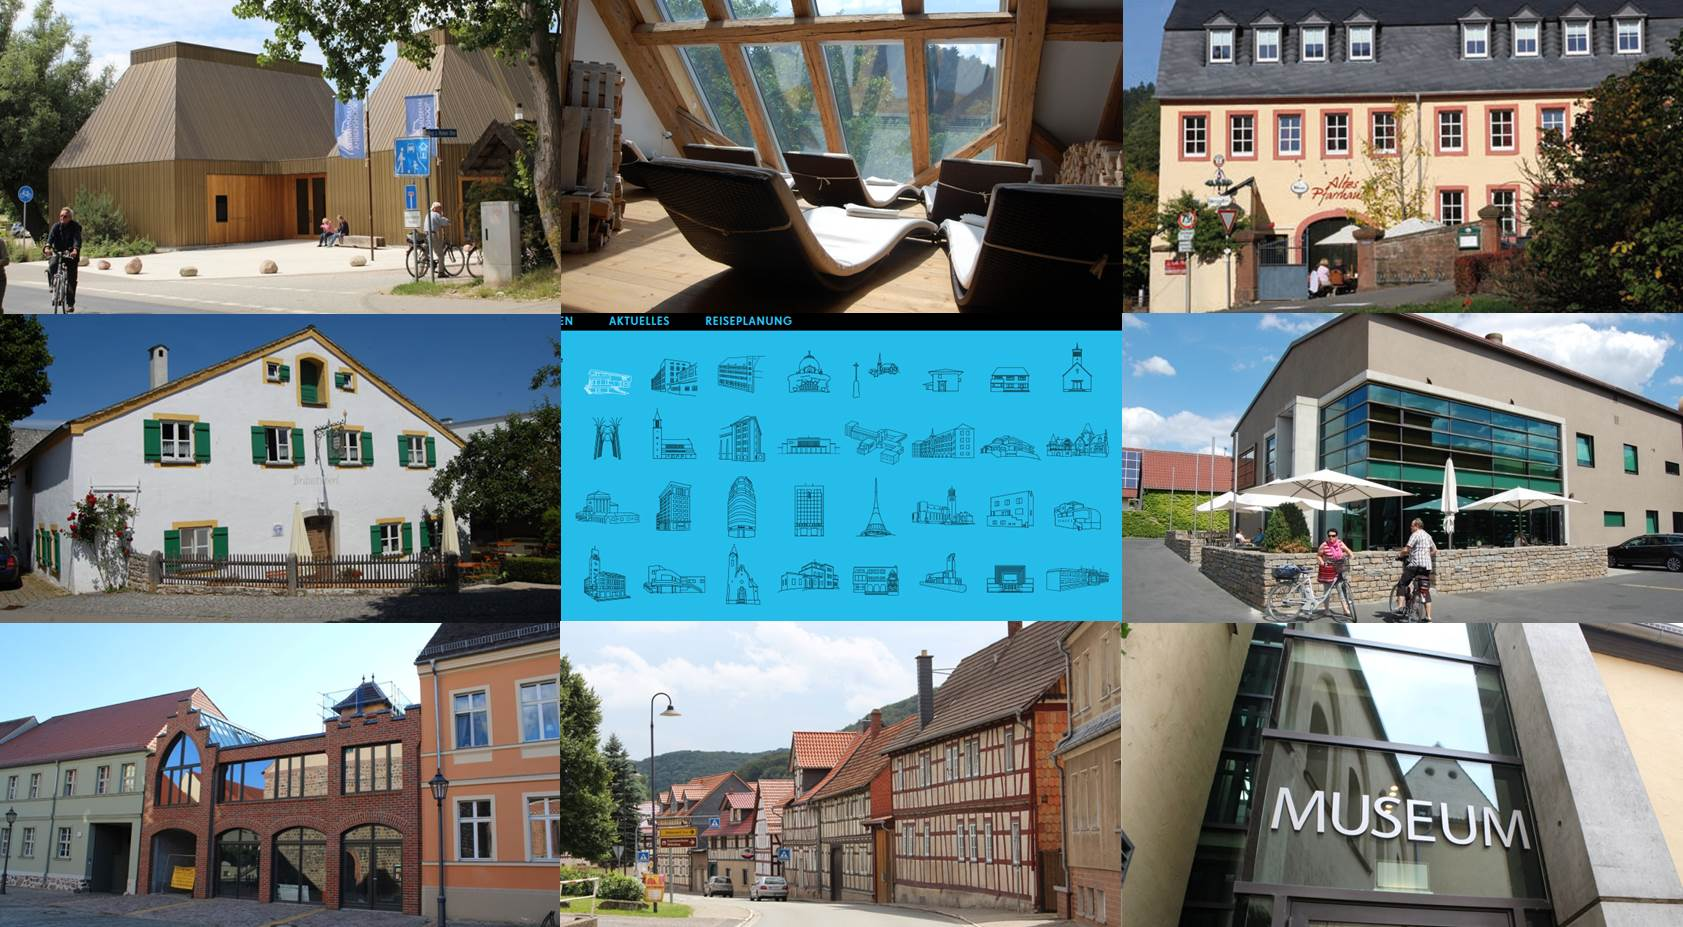 Selection of good examples of regional building culture in Germany